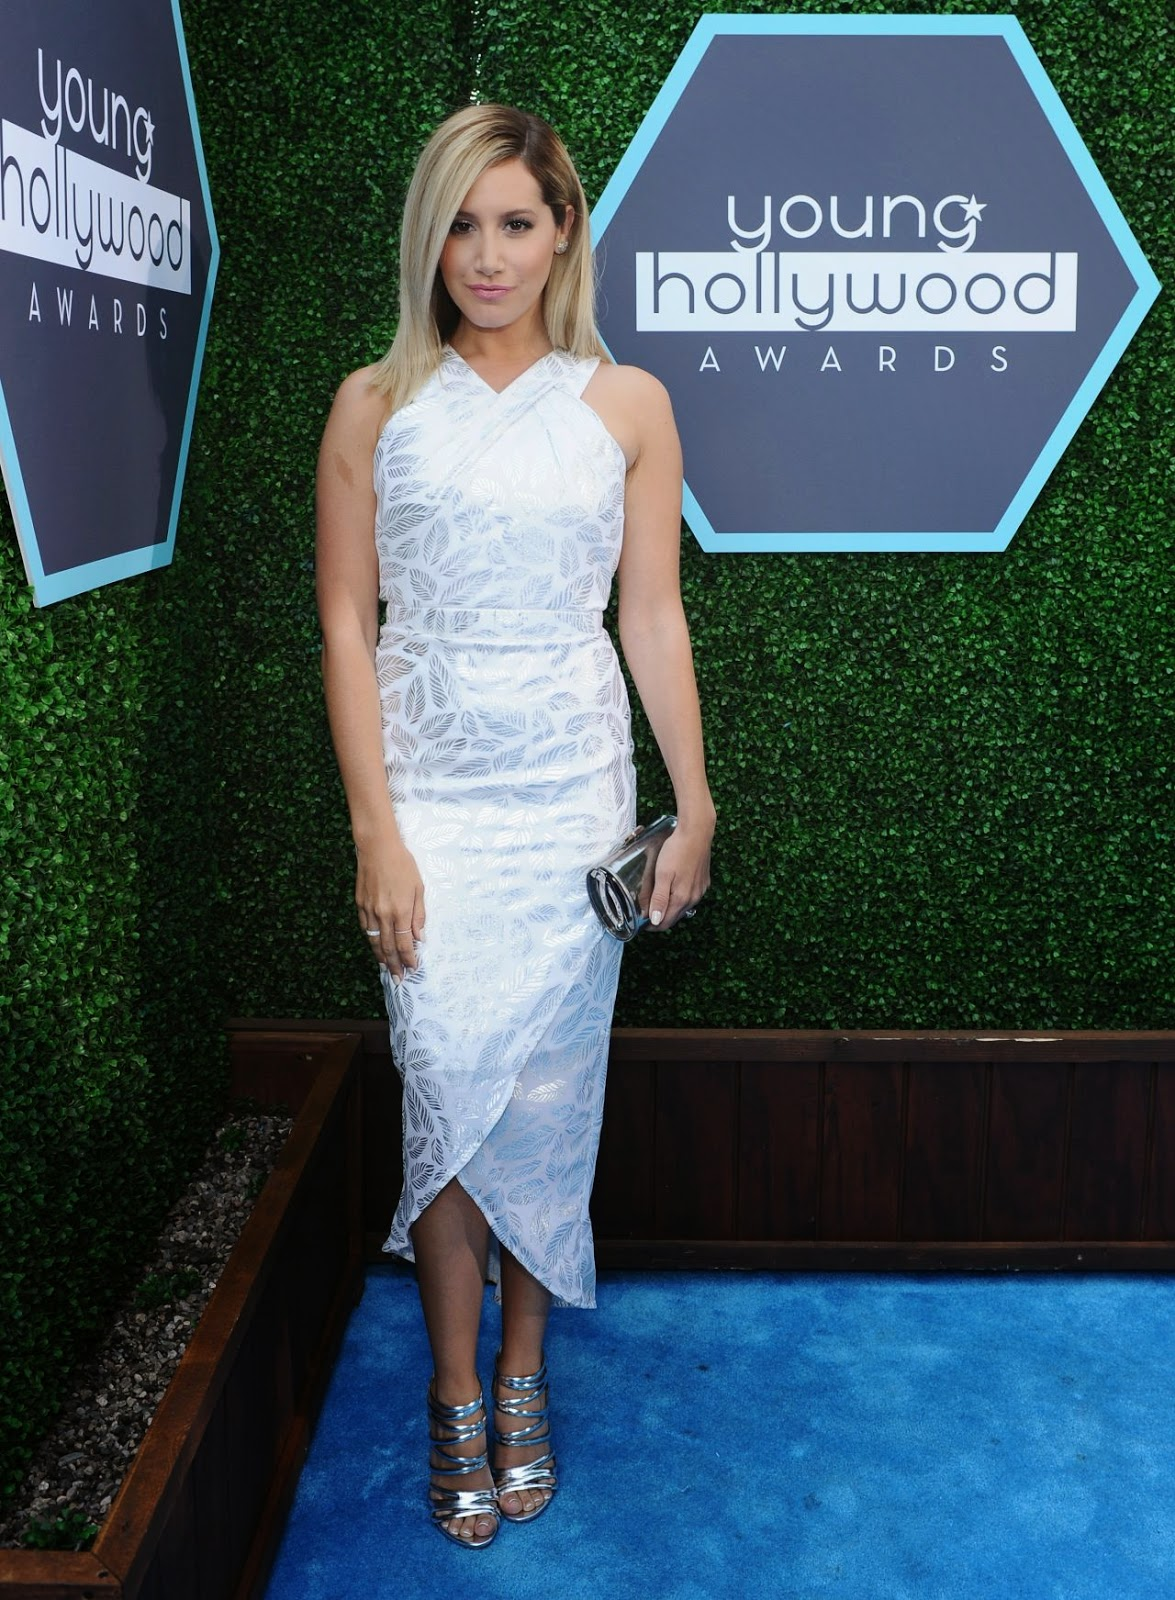 Ashley Tisdale in a halter dress at the 2014 Young Hollywood Awards